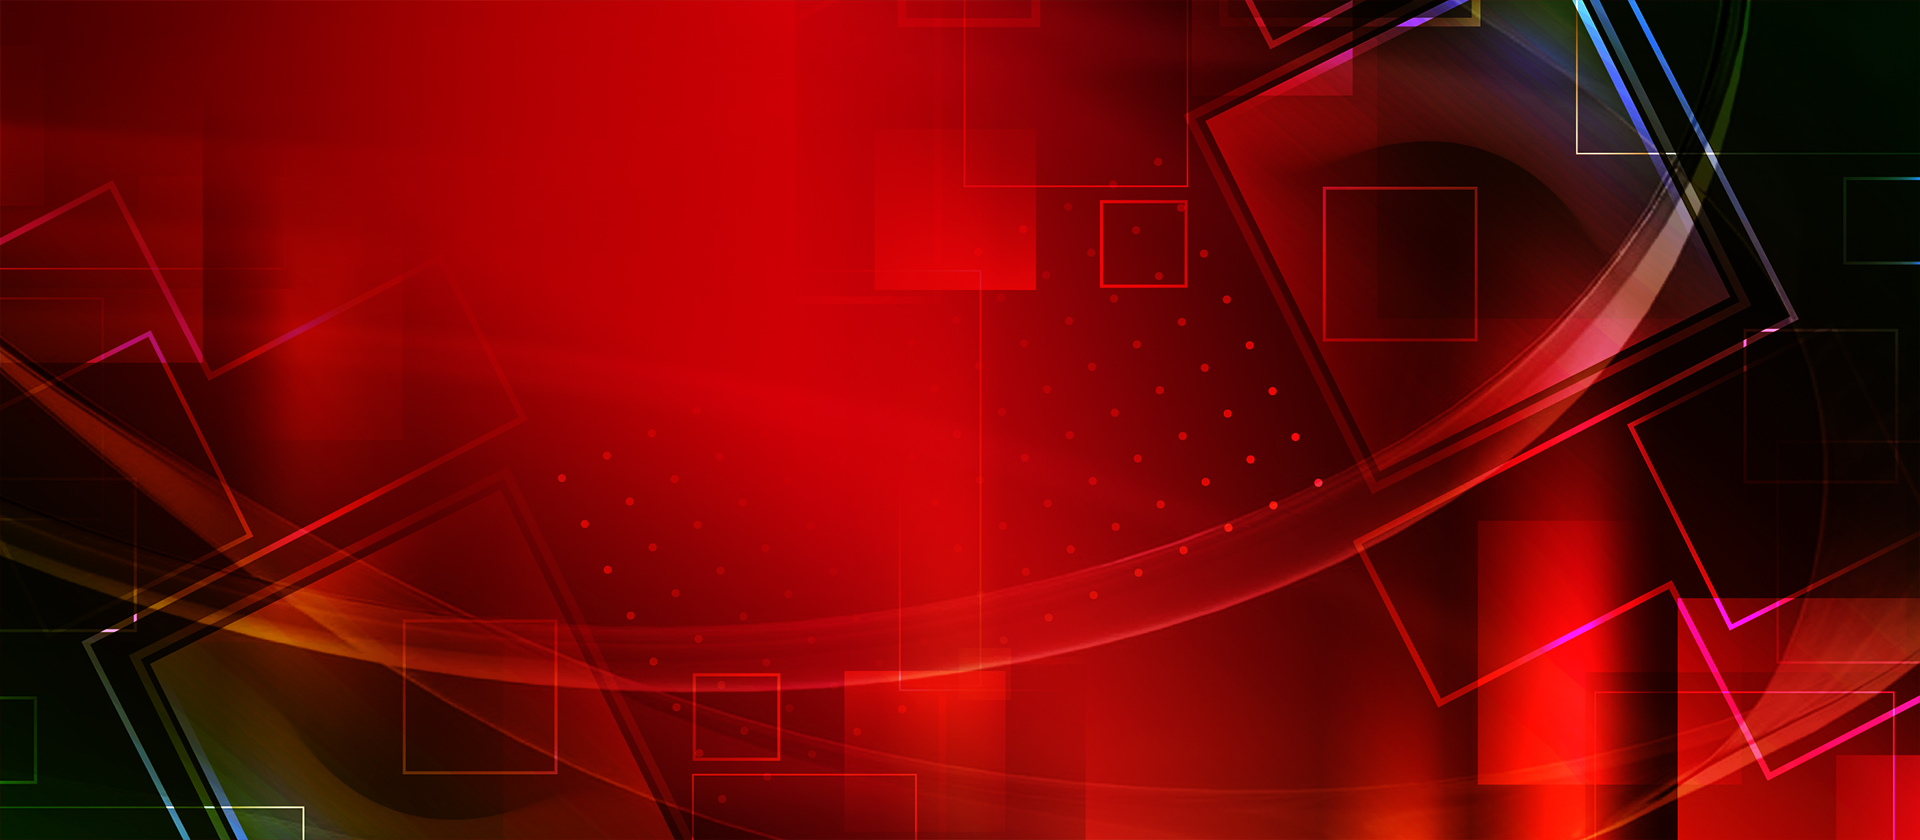 red background meeting  business  geometry  quadrilateral